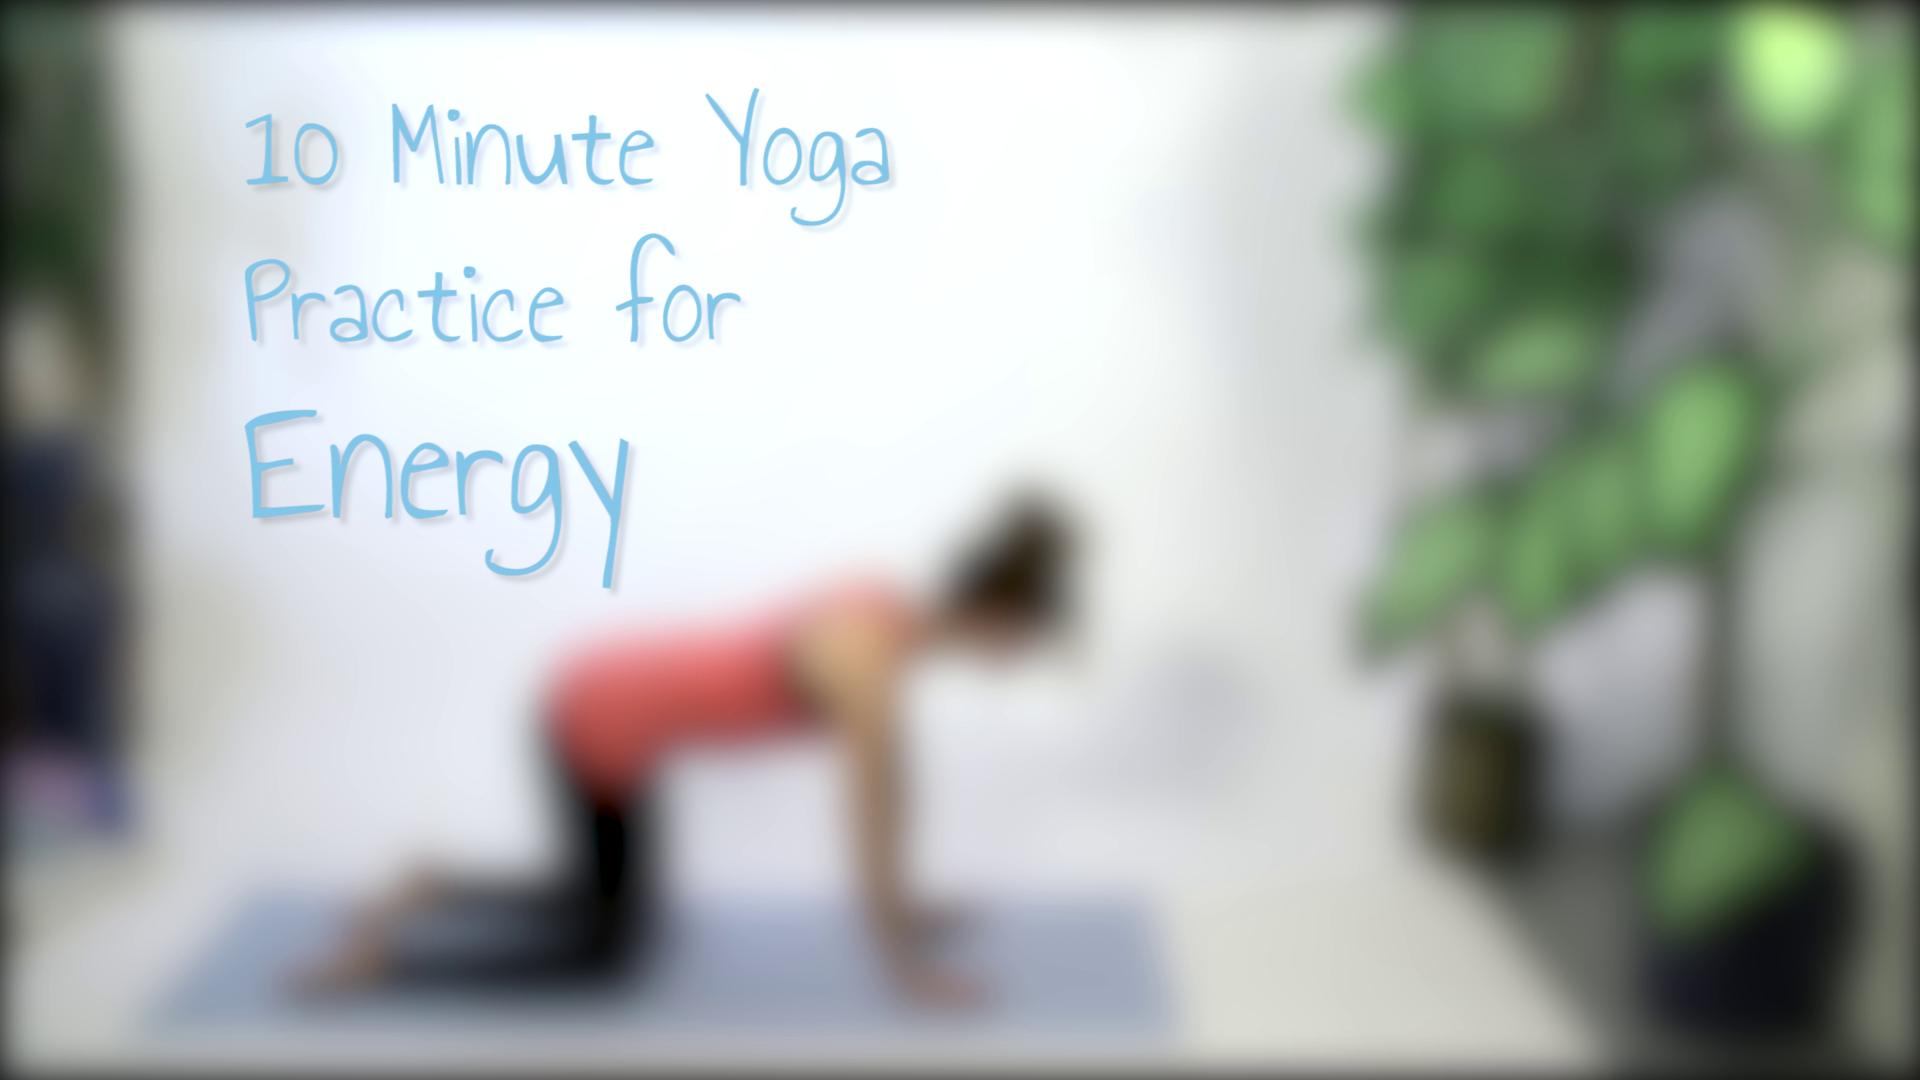 10 Minute Yoga Practice for Energy